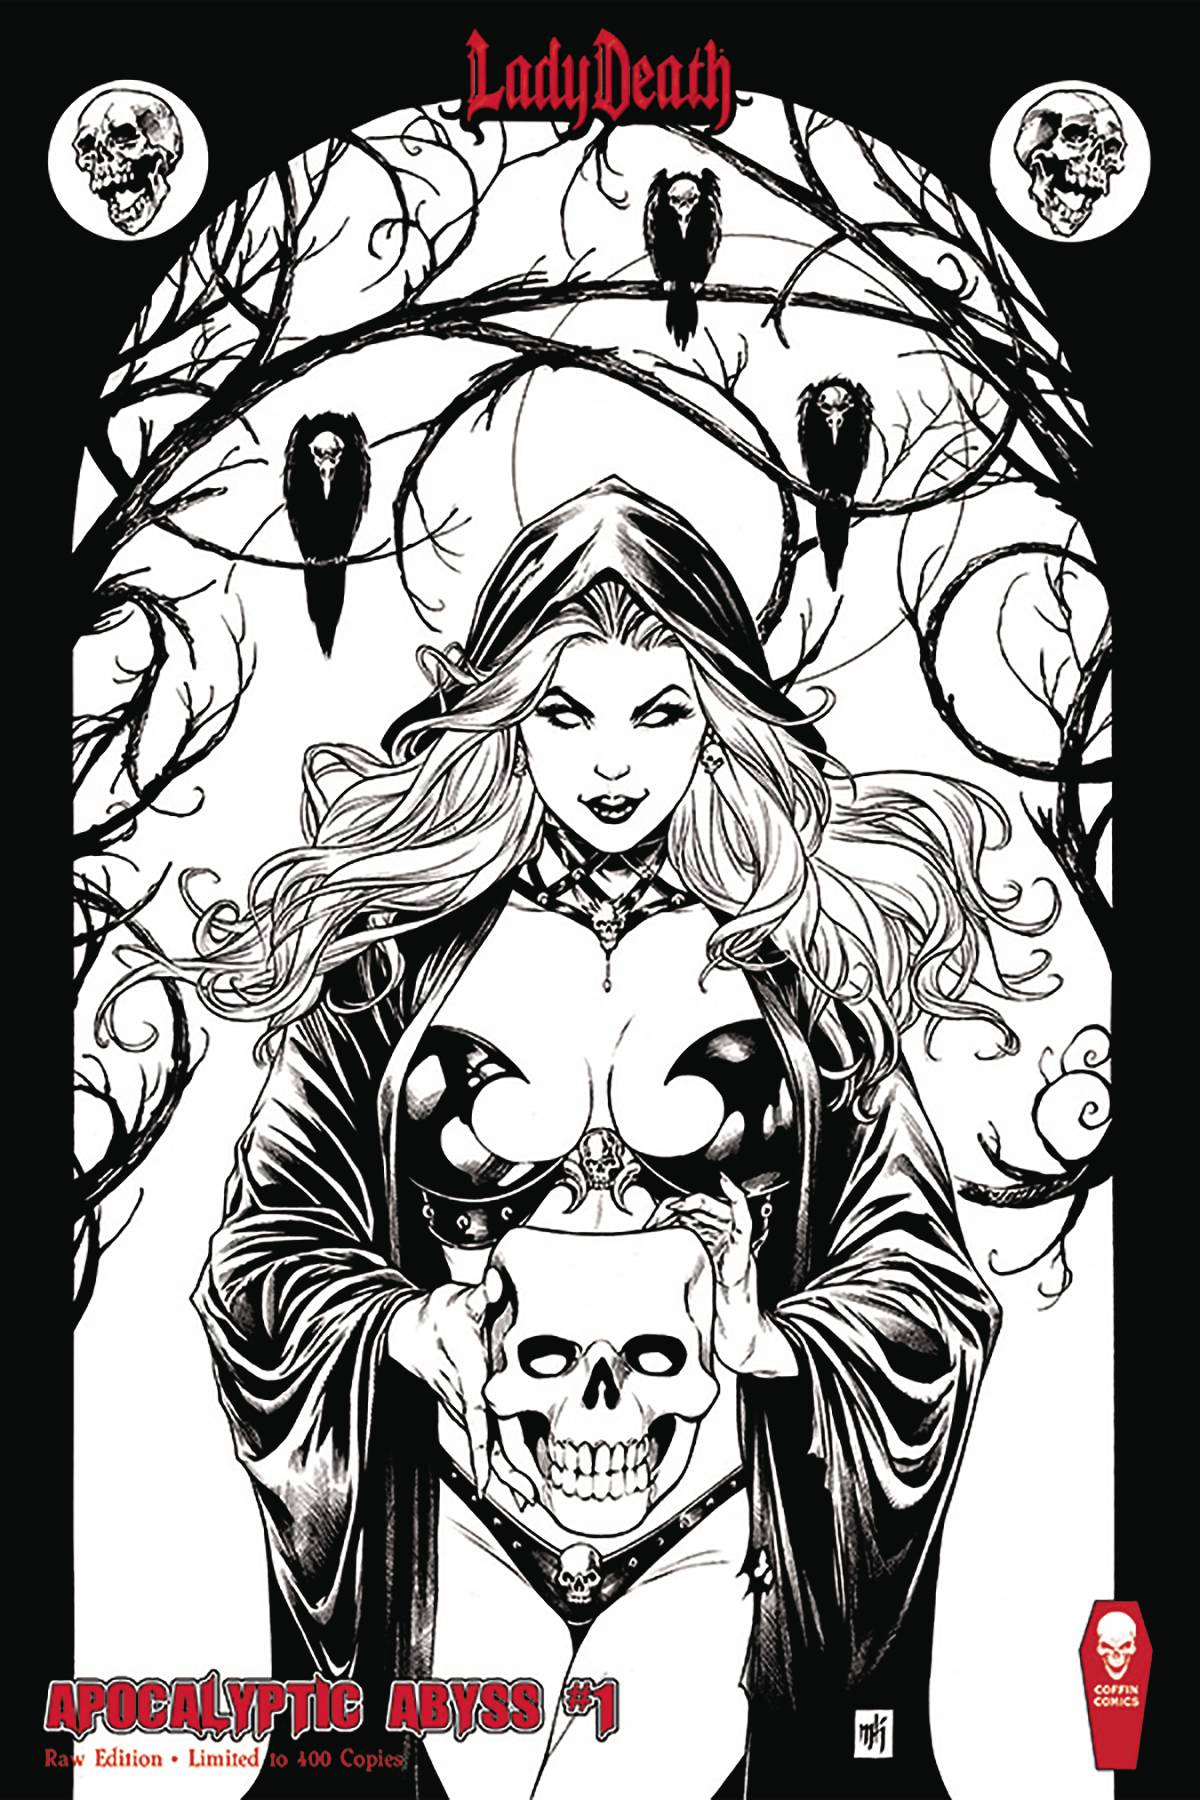 LADY DEATH APOCALYPTIC ABYSS #1 (OF 2) RAW ED (MR)